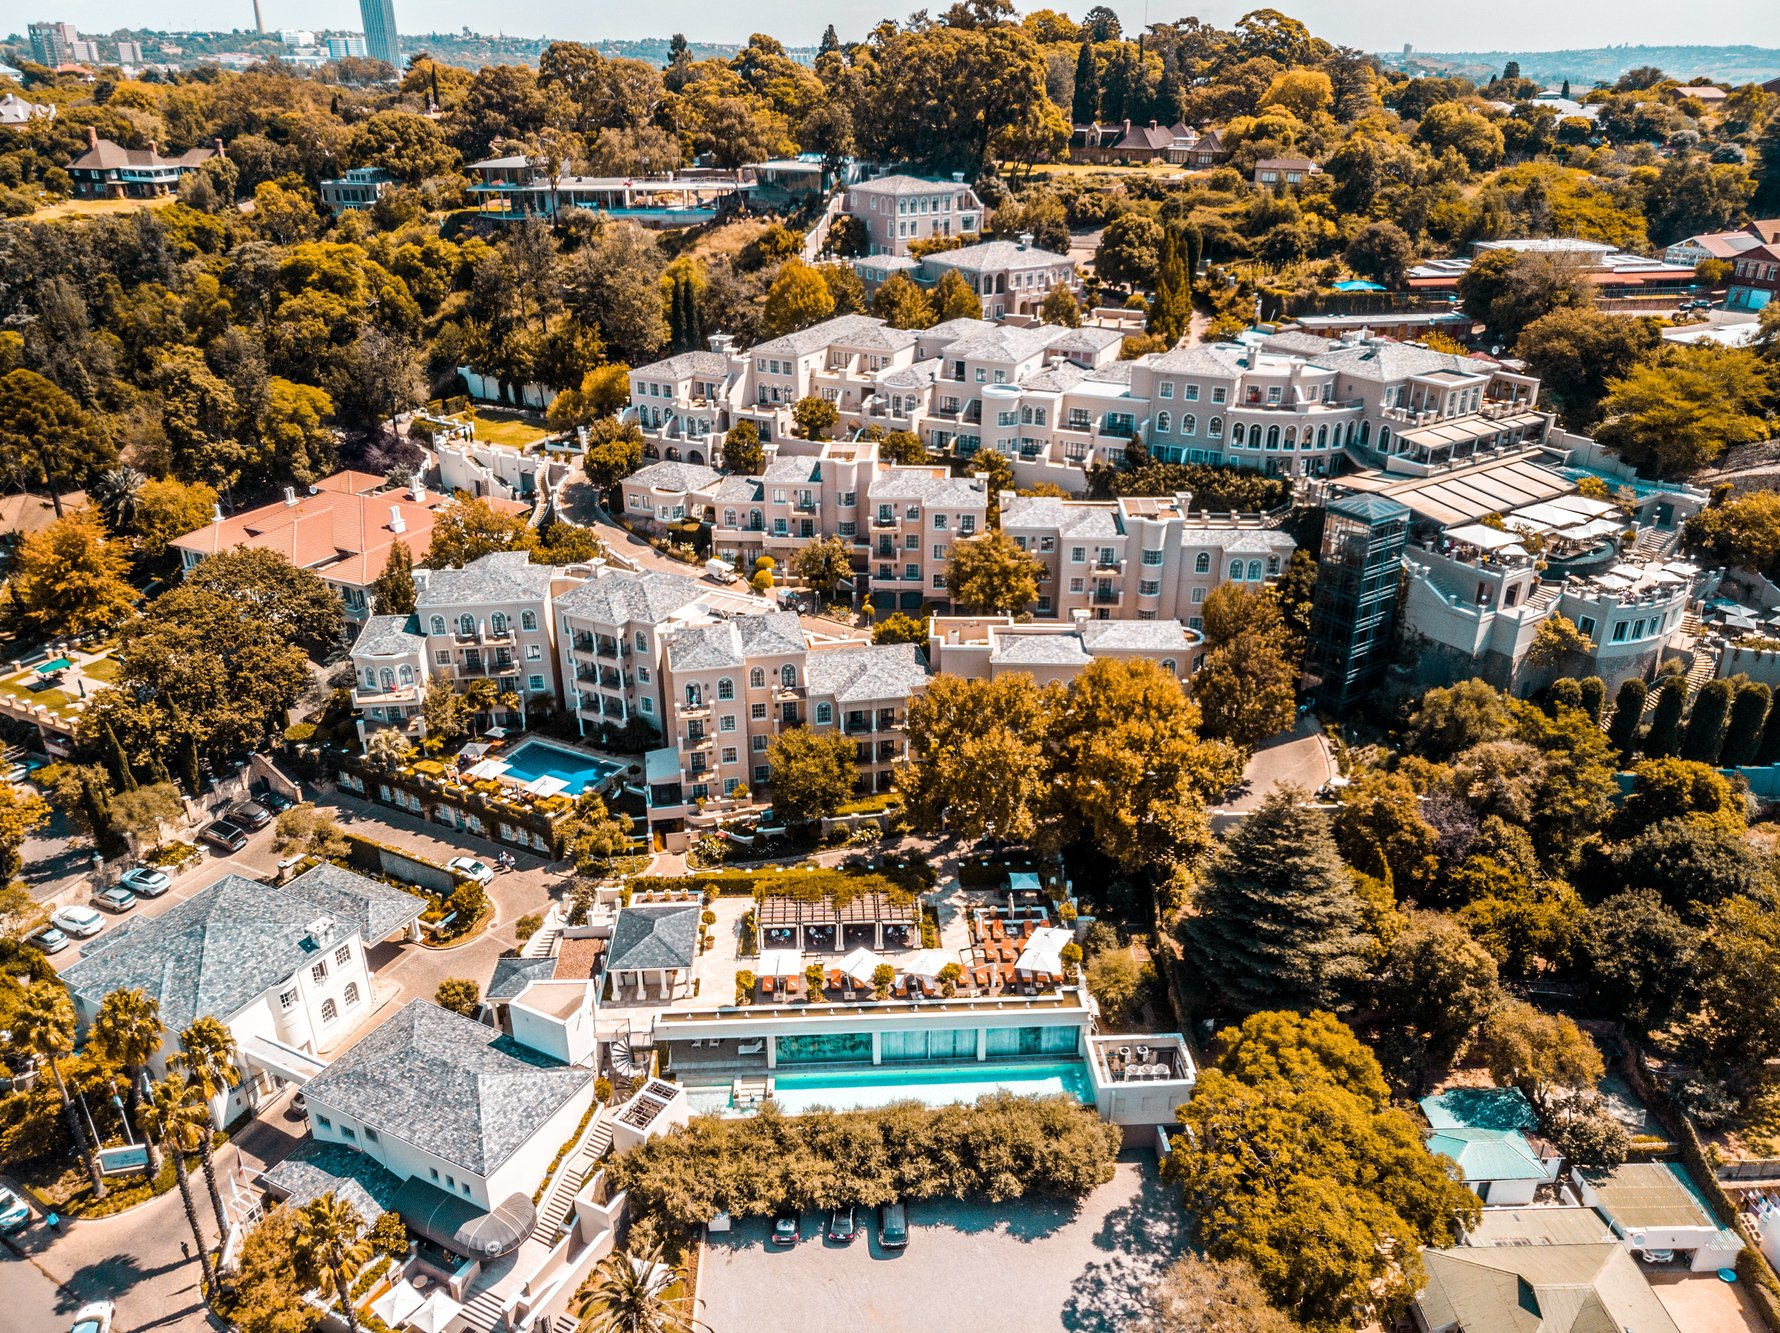 Aerial view of Four Seasons The Westcliff